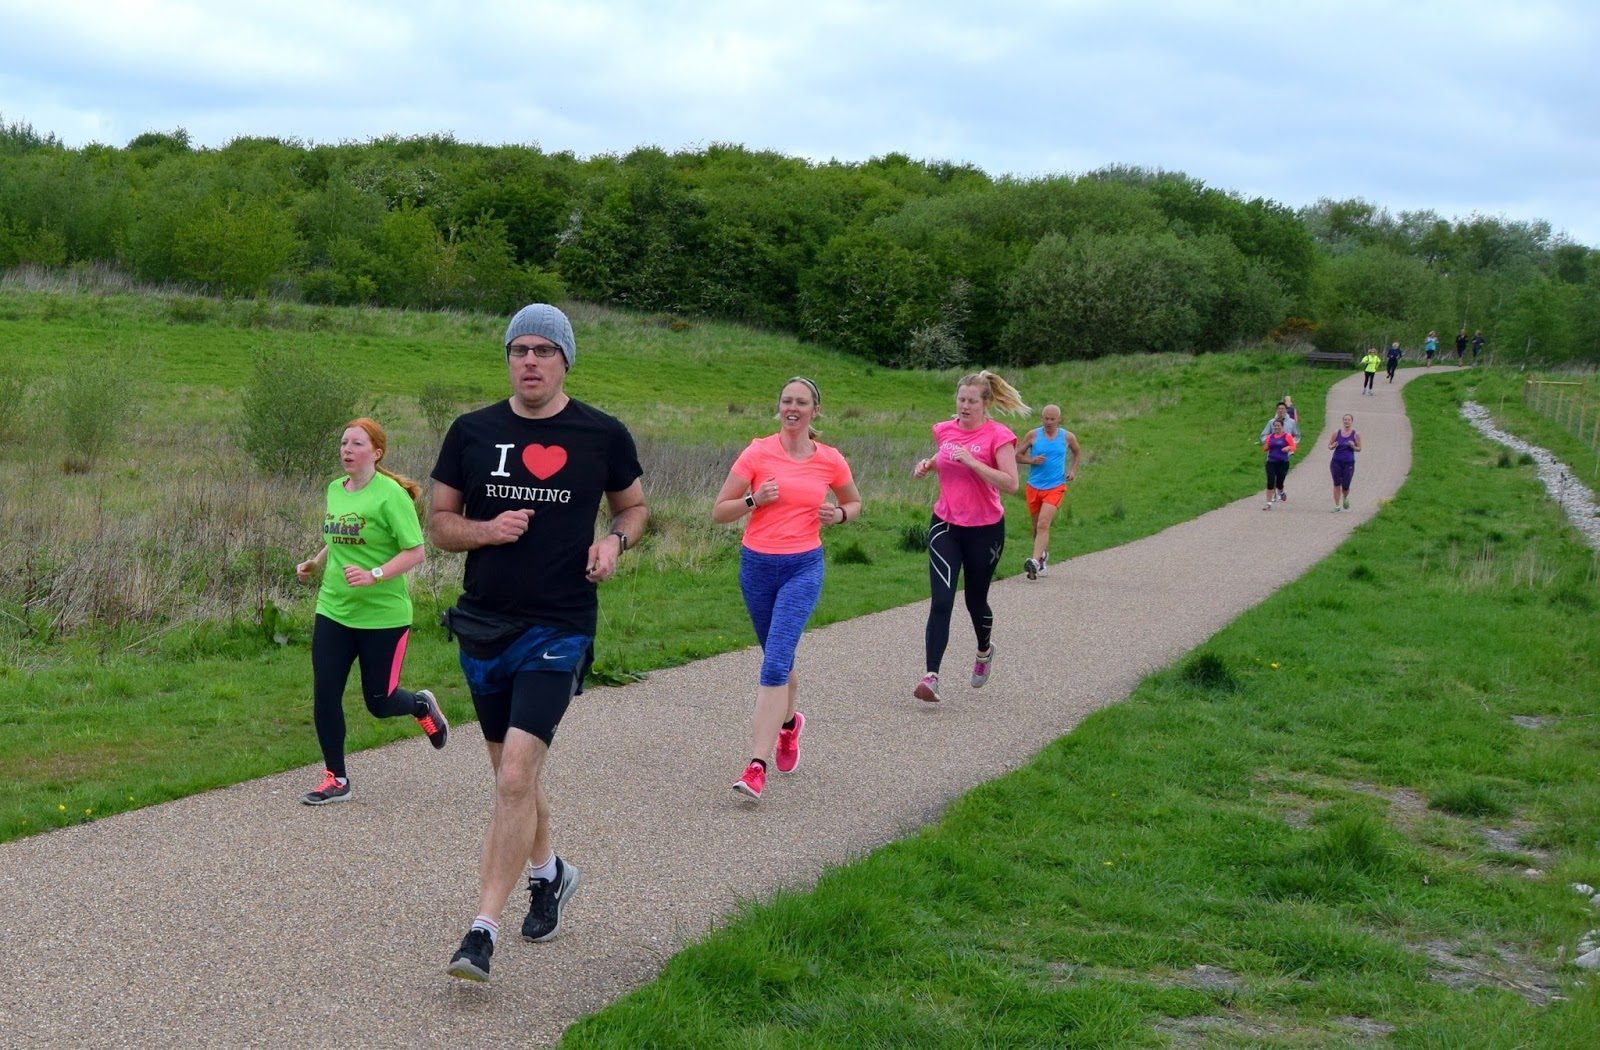 Parkrun Fun In Gedling, Nottingham Want To Join Us?